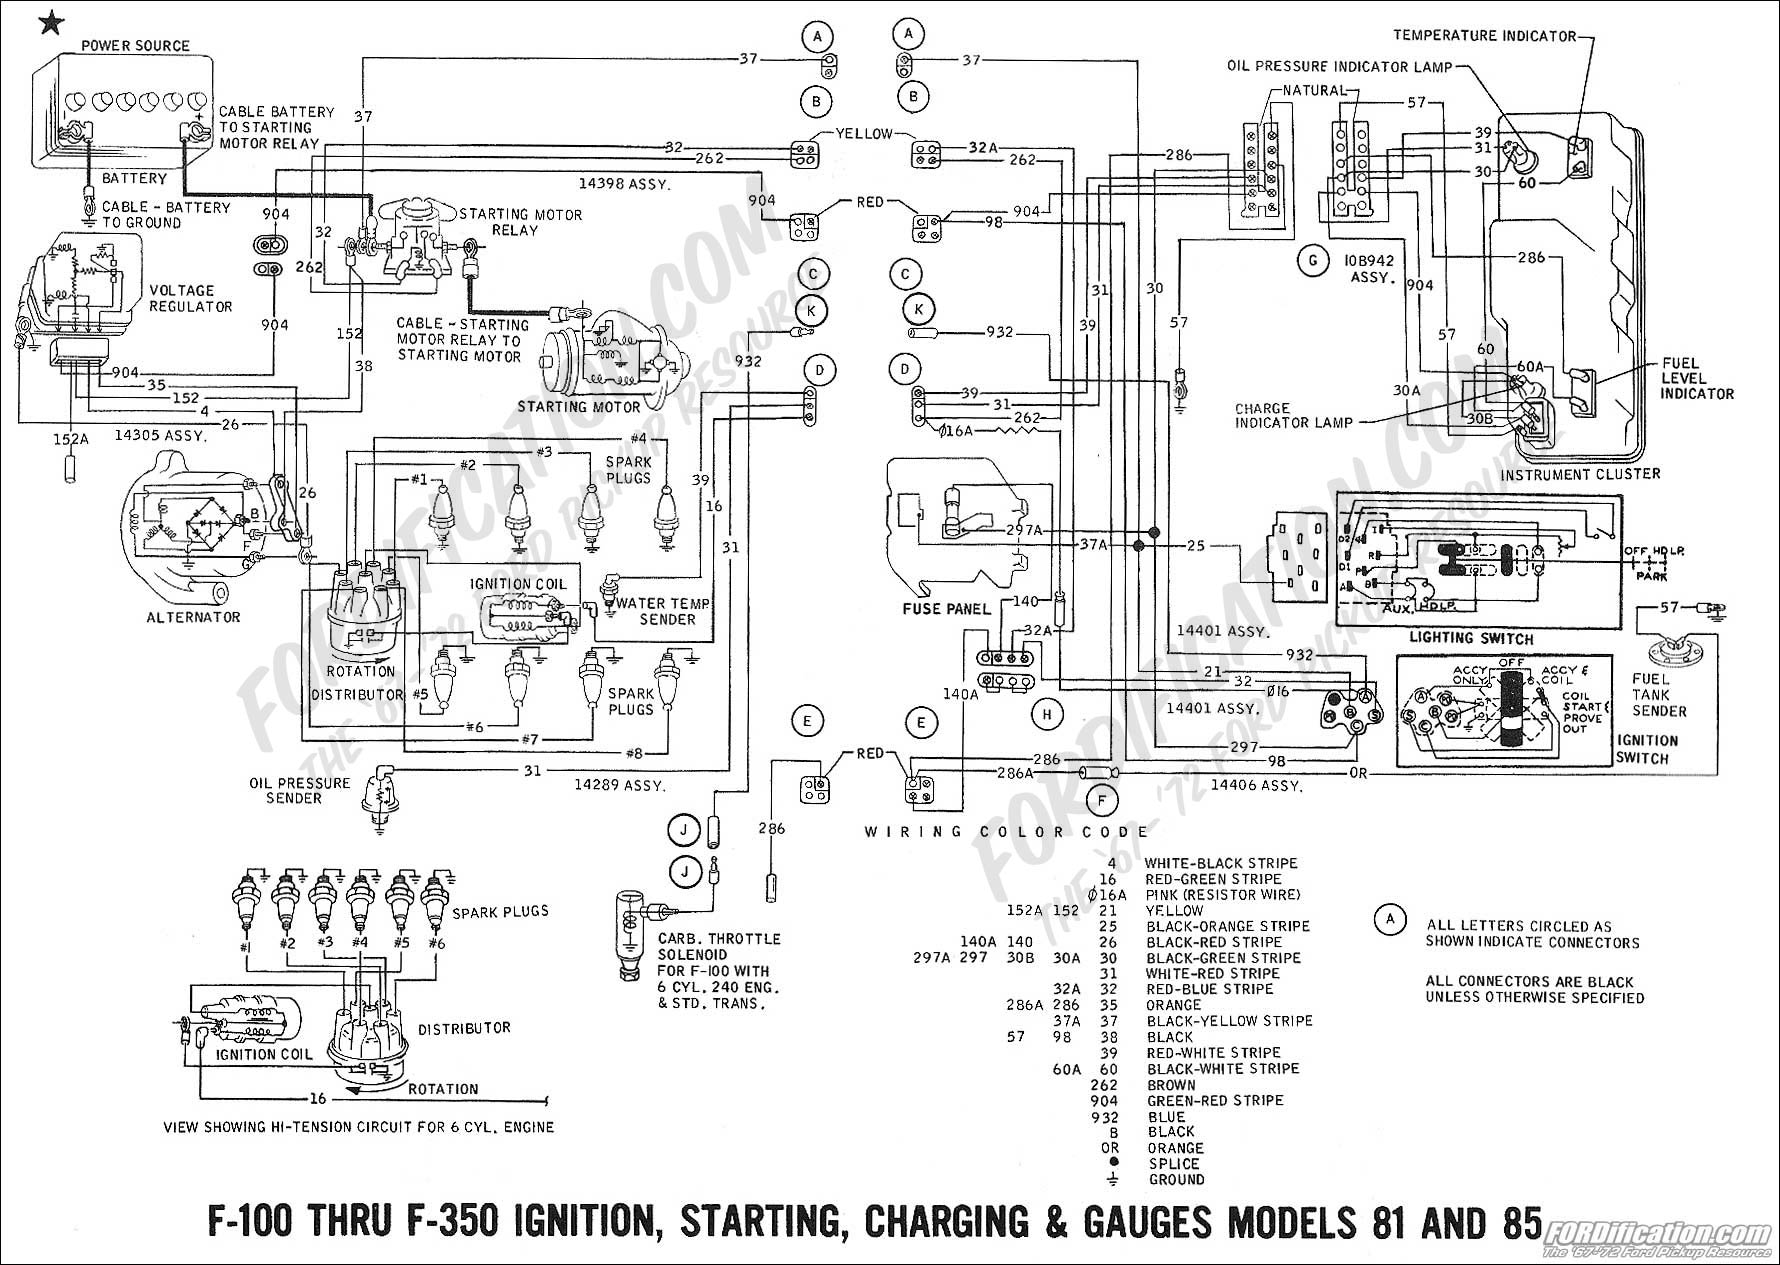 Ford Truck Wiring Schematics Diagram 1973 Chevrolet Heavy 1969 F100 Detailed Schematic Diagrams 65